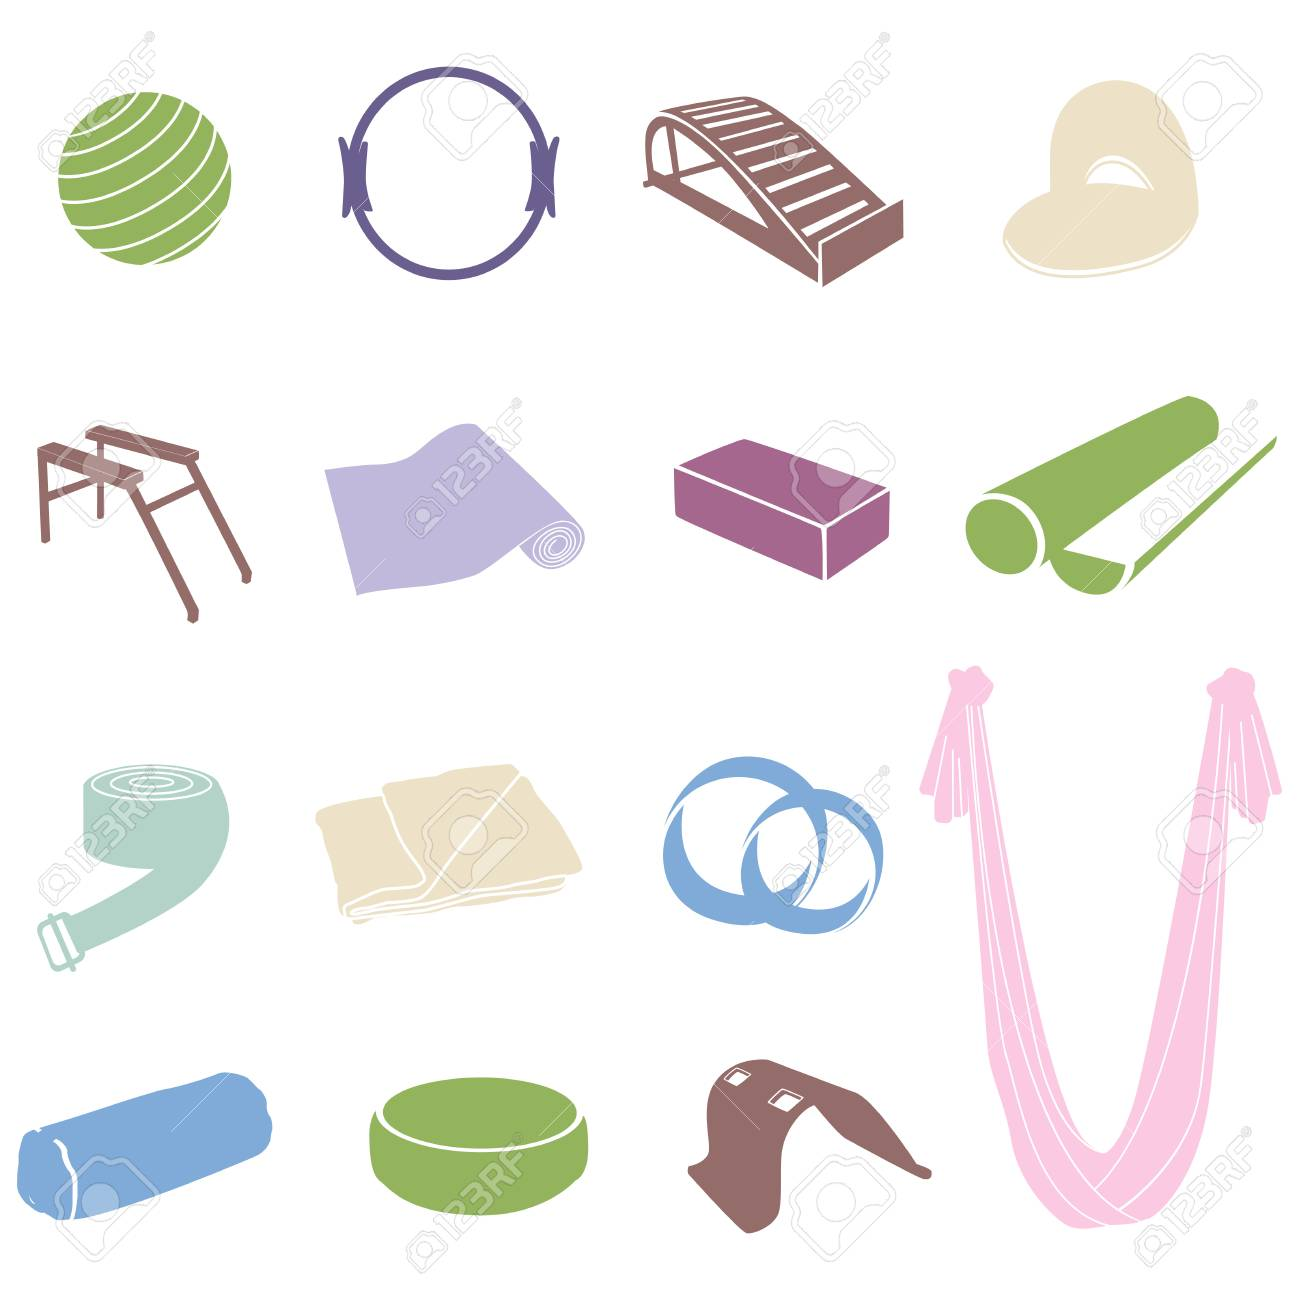 Yoga And Pilates Equipment Set Royalty Free Cliparts 0b23ab81d